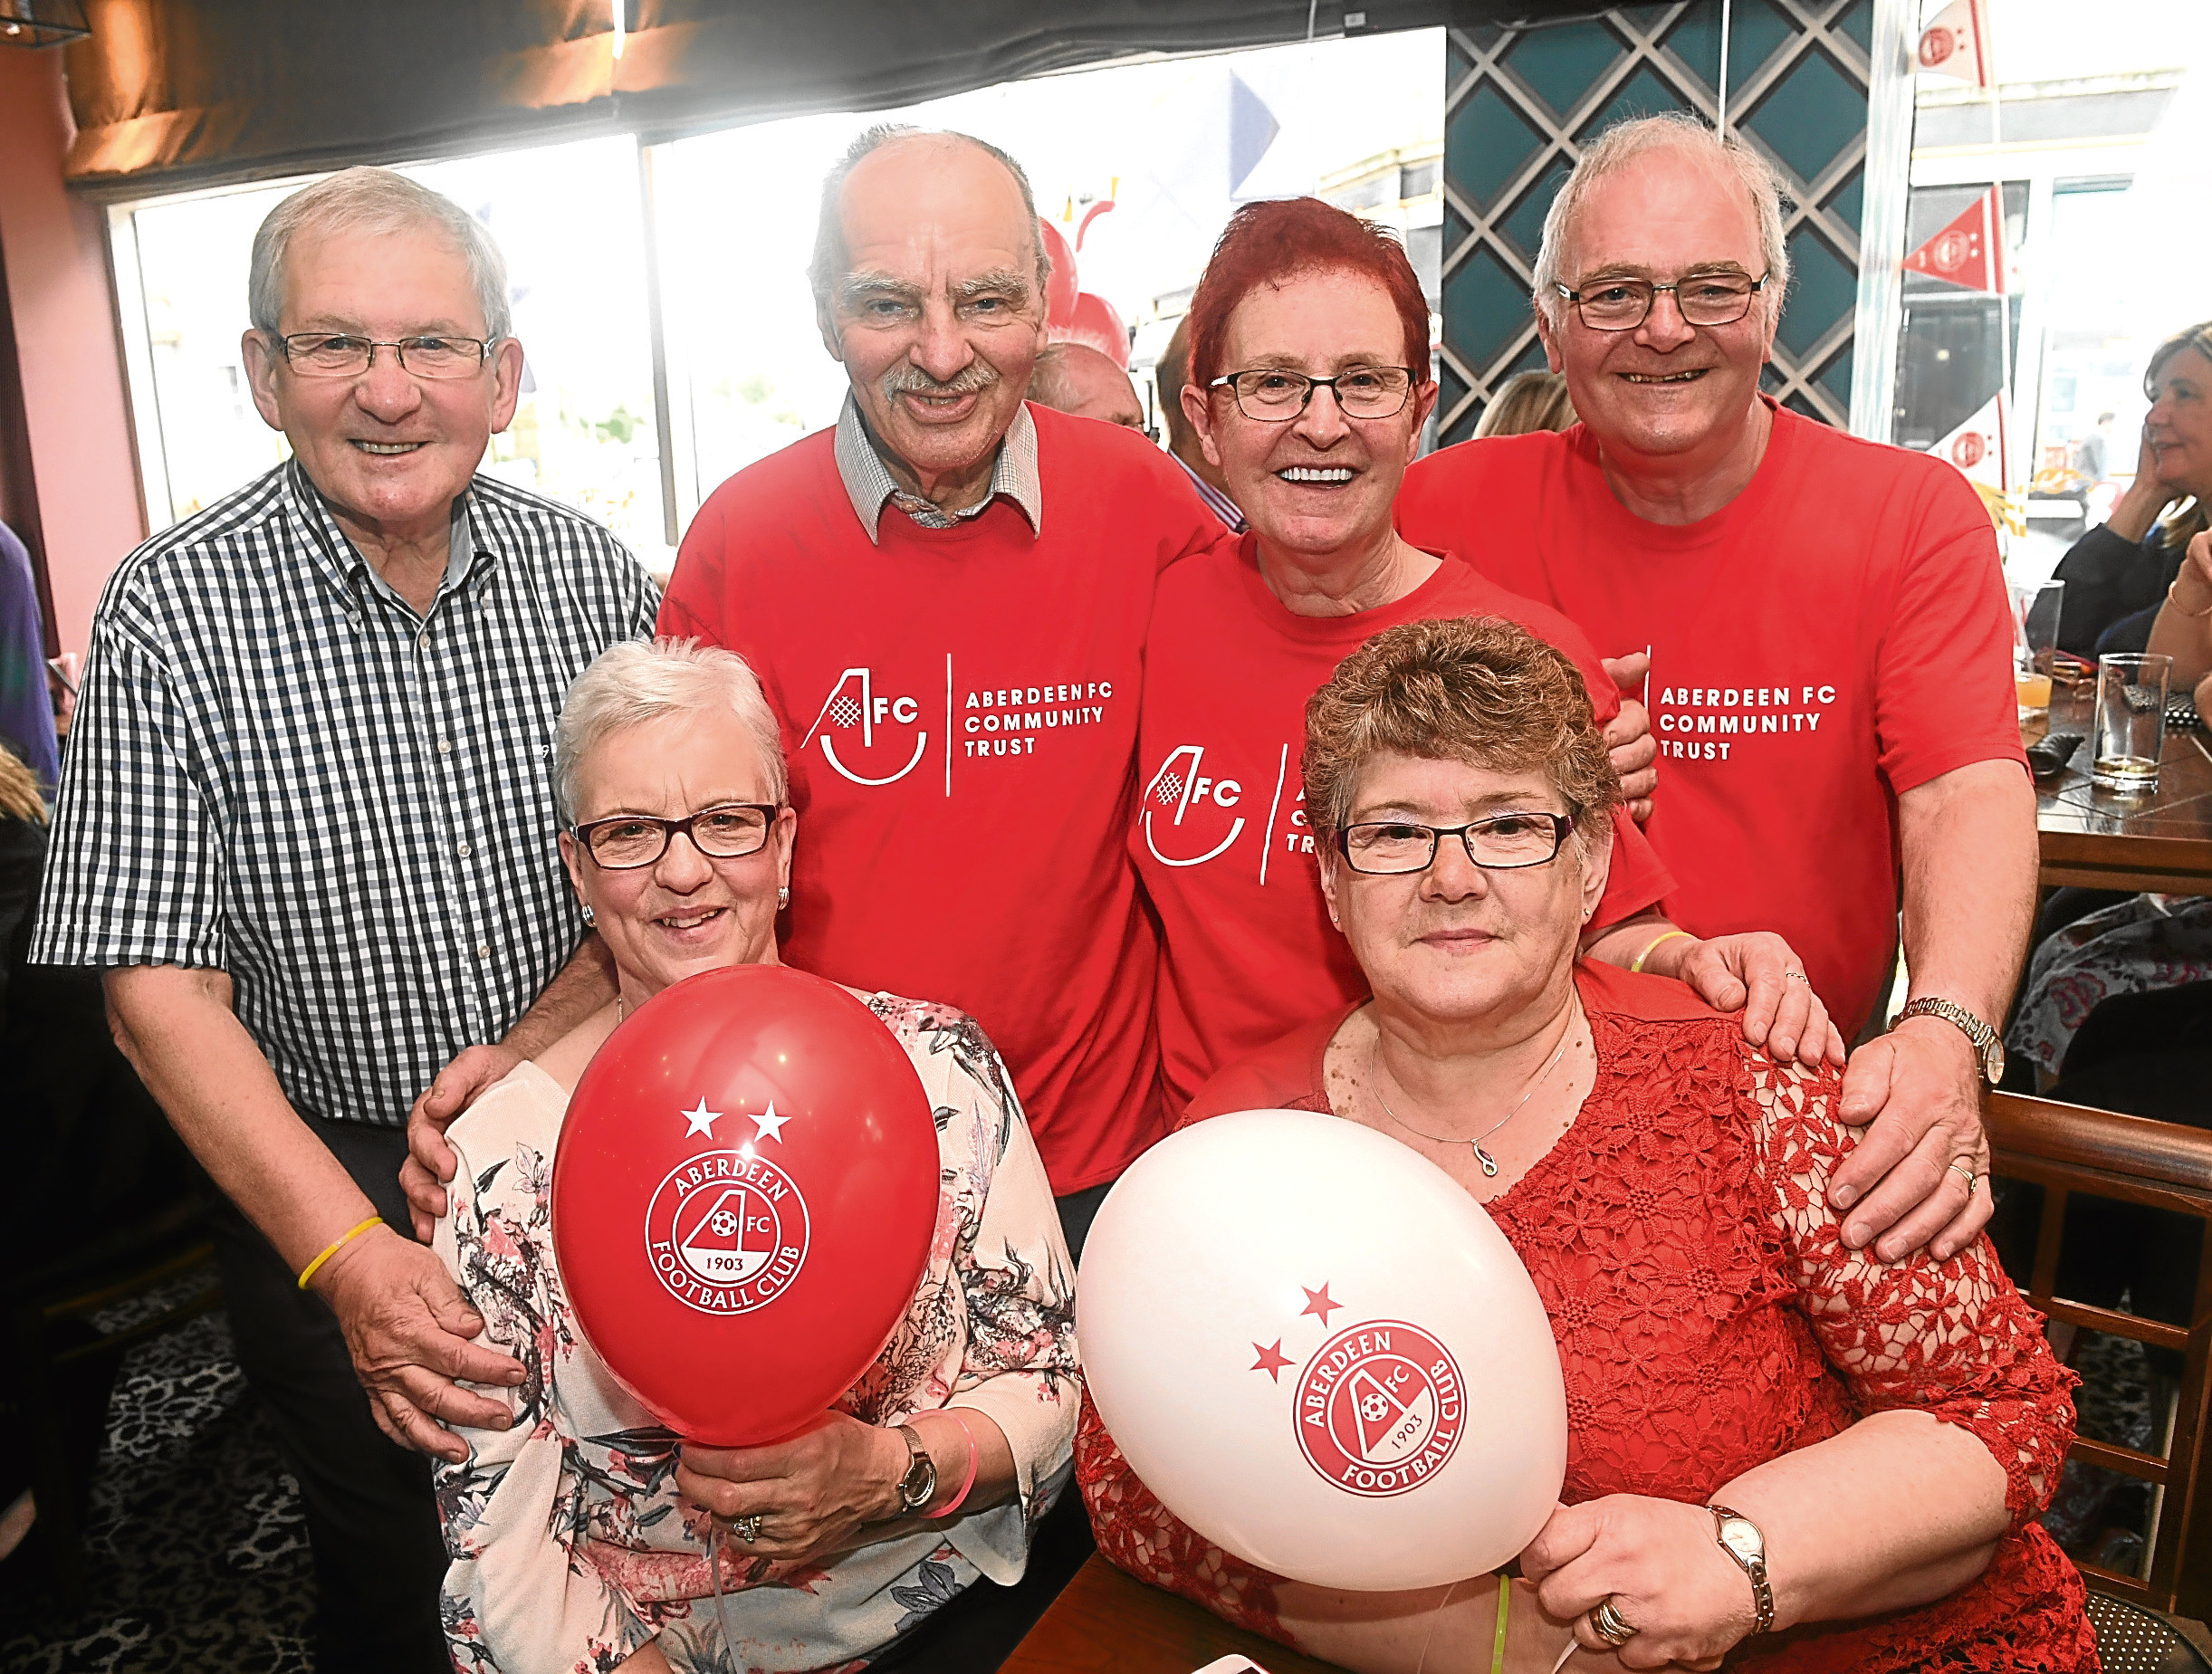 Back, from left, Jim Davidson, Alex Rennie, Marie Douglas and Ronnie Kain from AFC Community Trust and front, from left, Barbara Davidson and Irene Kain.